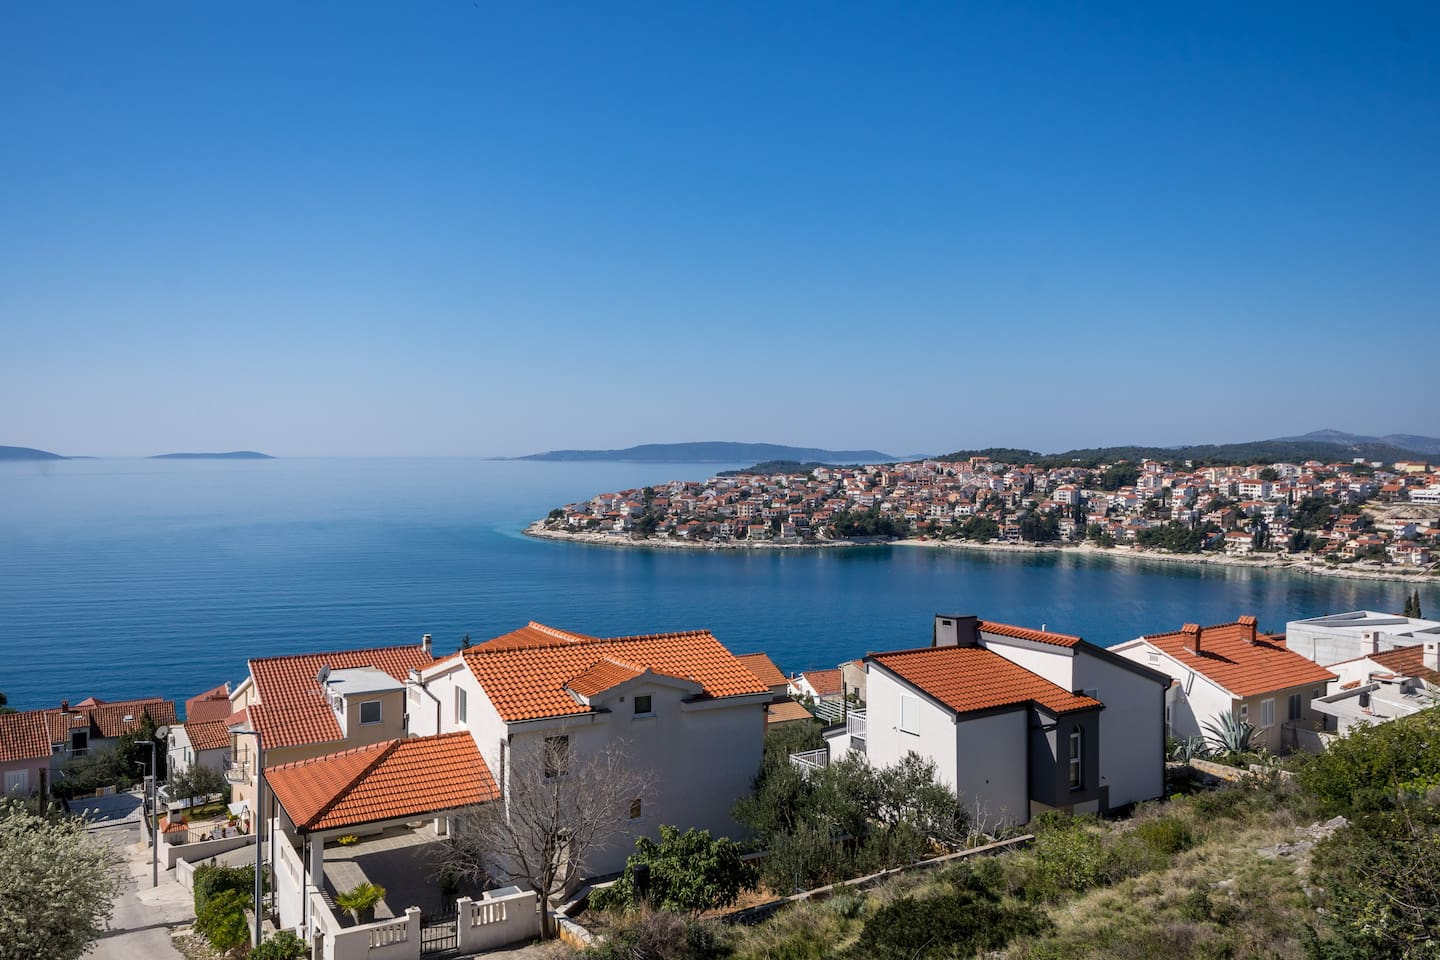 Beautiful view from the house, overlooking the crystal clear Adriatic